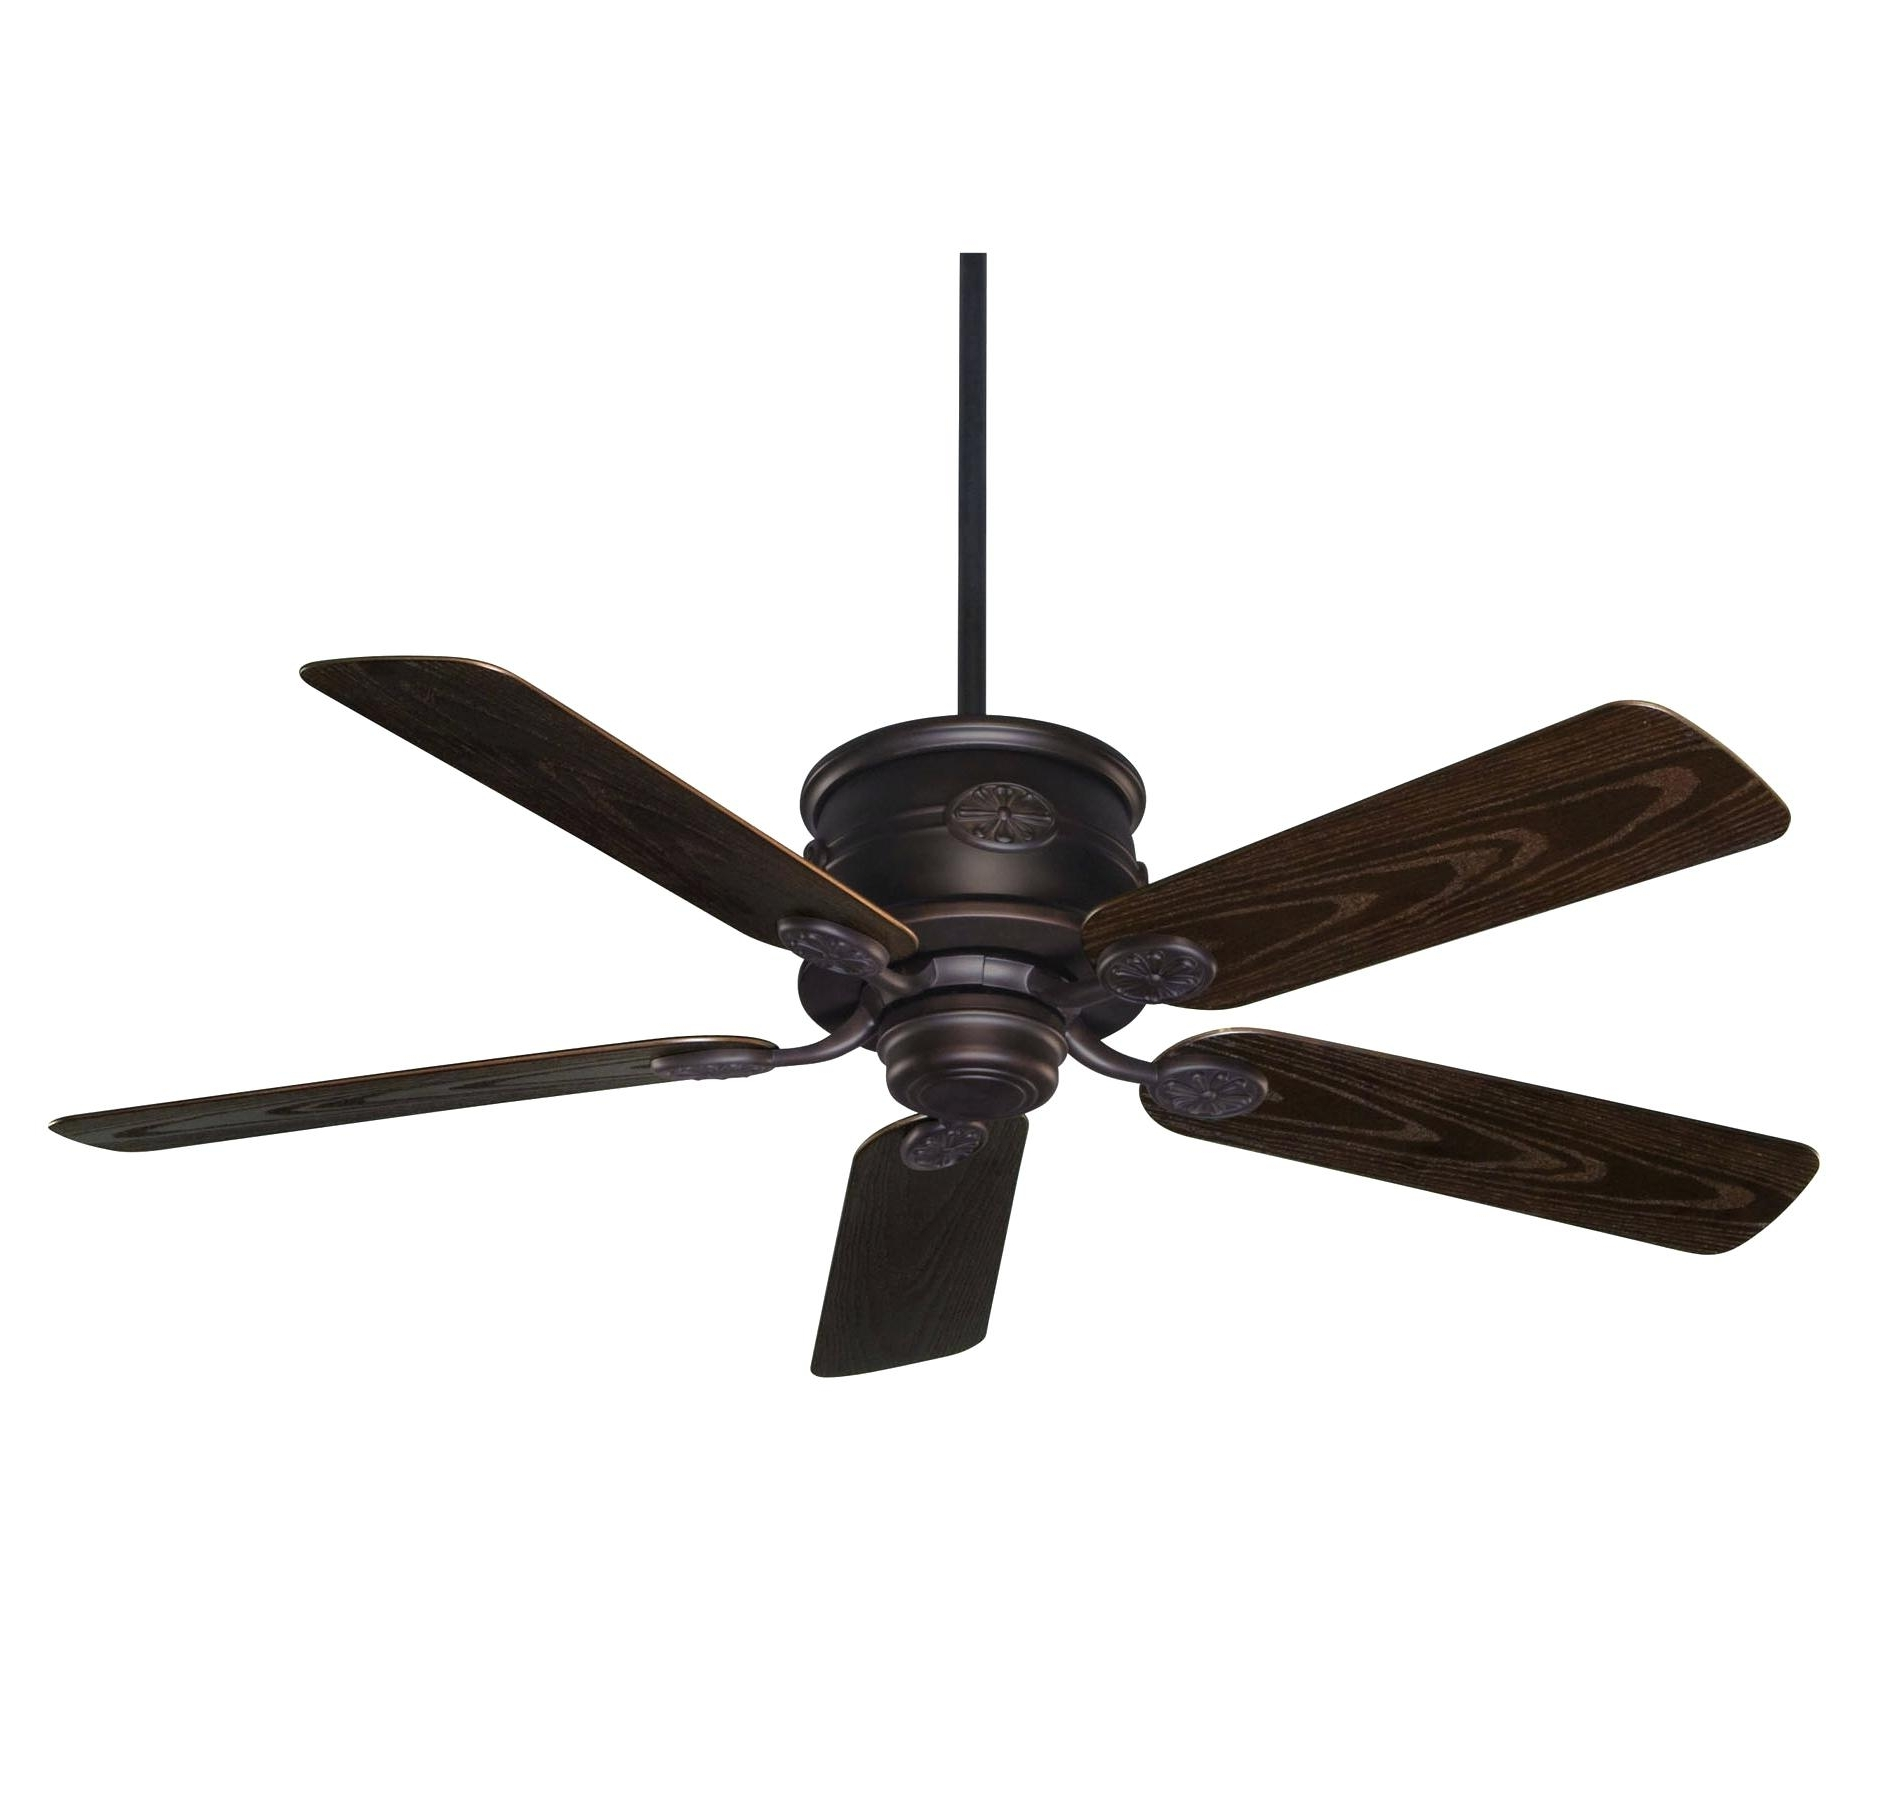 Newest Wayfair Outdoor Ceiling Fans With Lights Throughout Wayfair Ceiling Fans S Fan Lights With Remote Hugger (View 9 of 20)